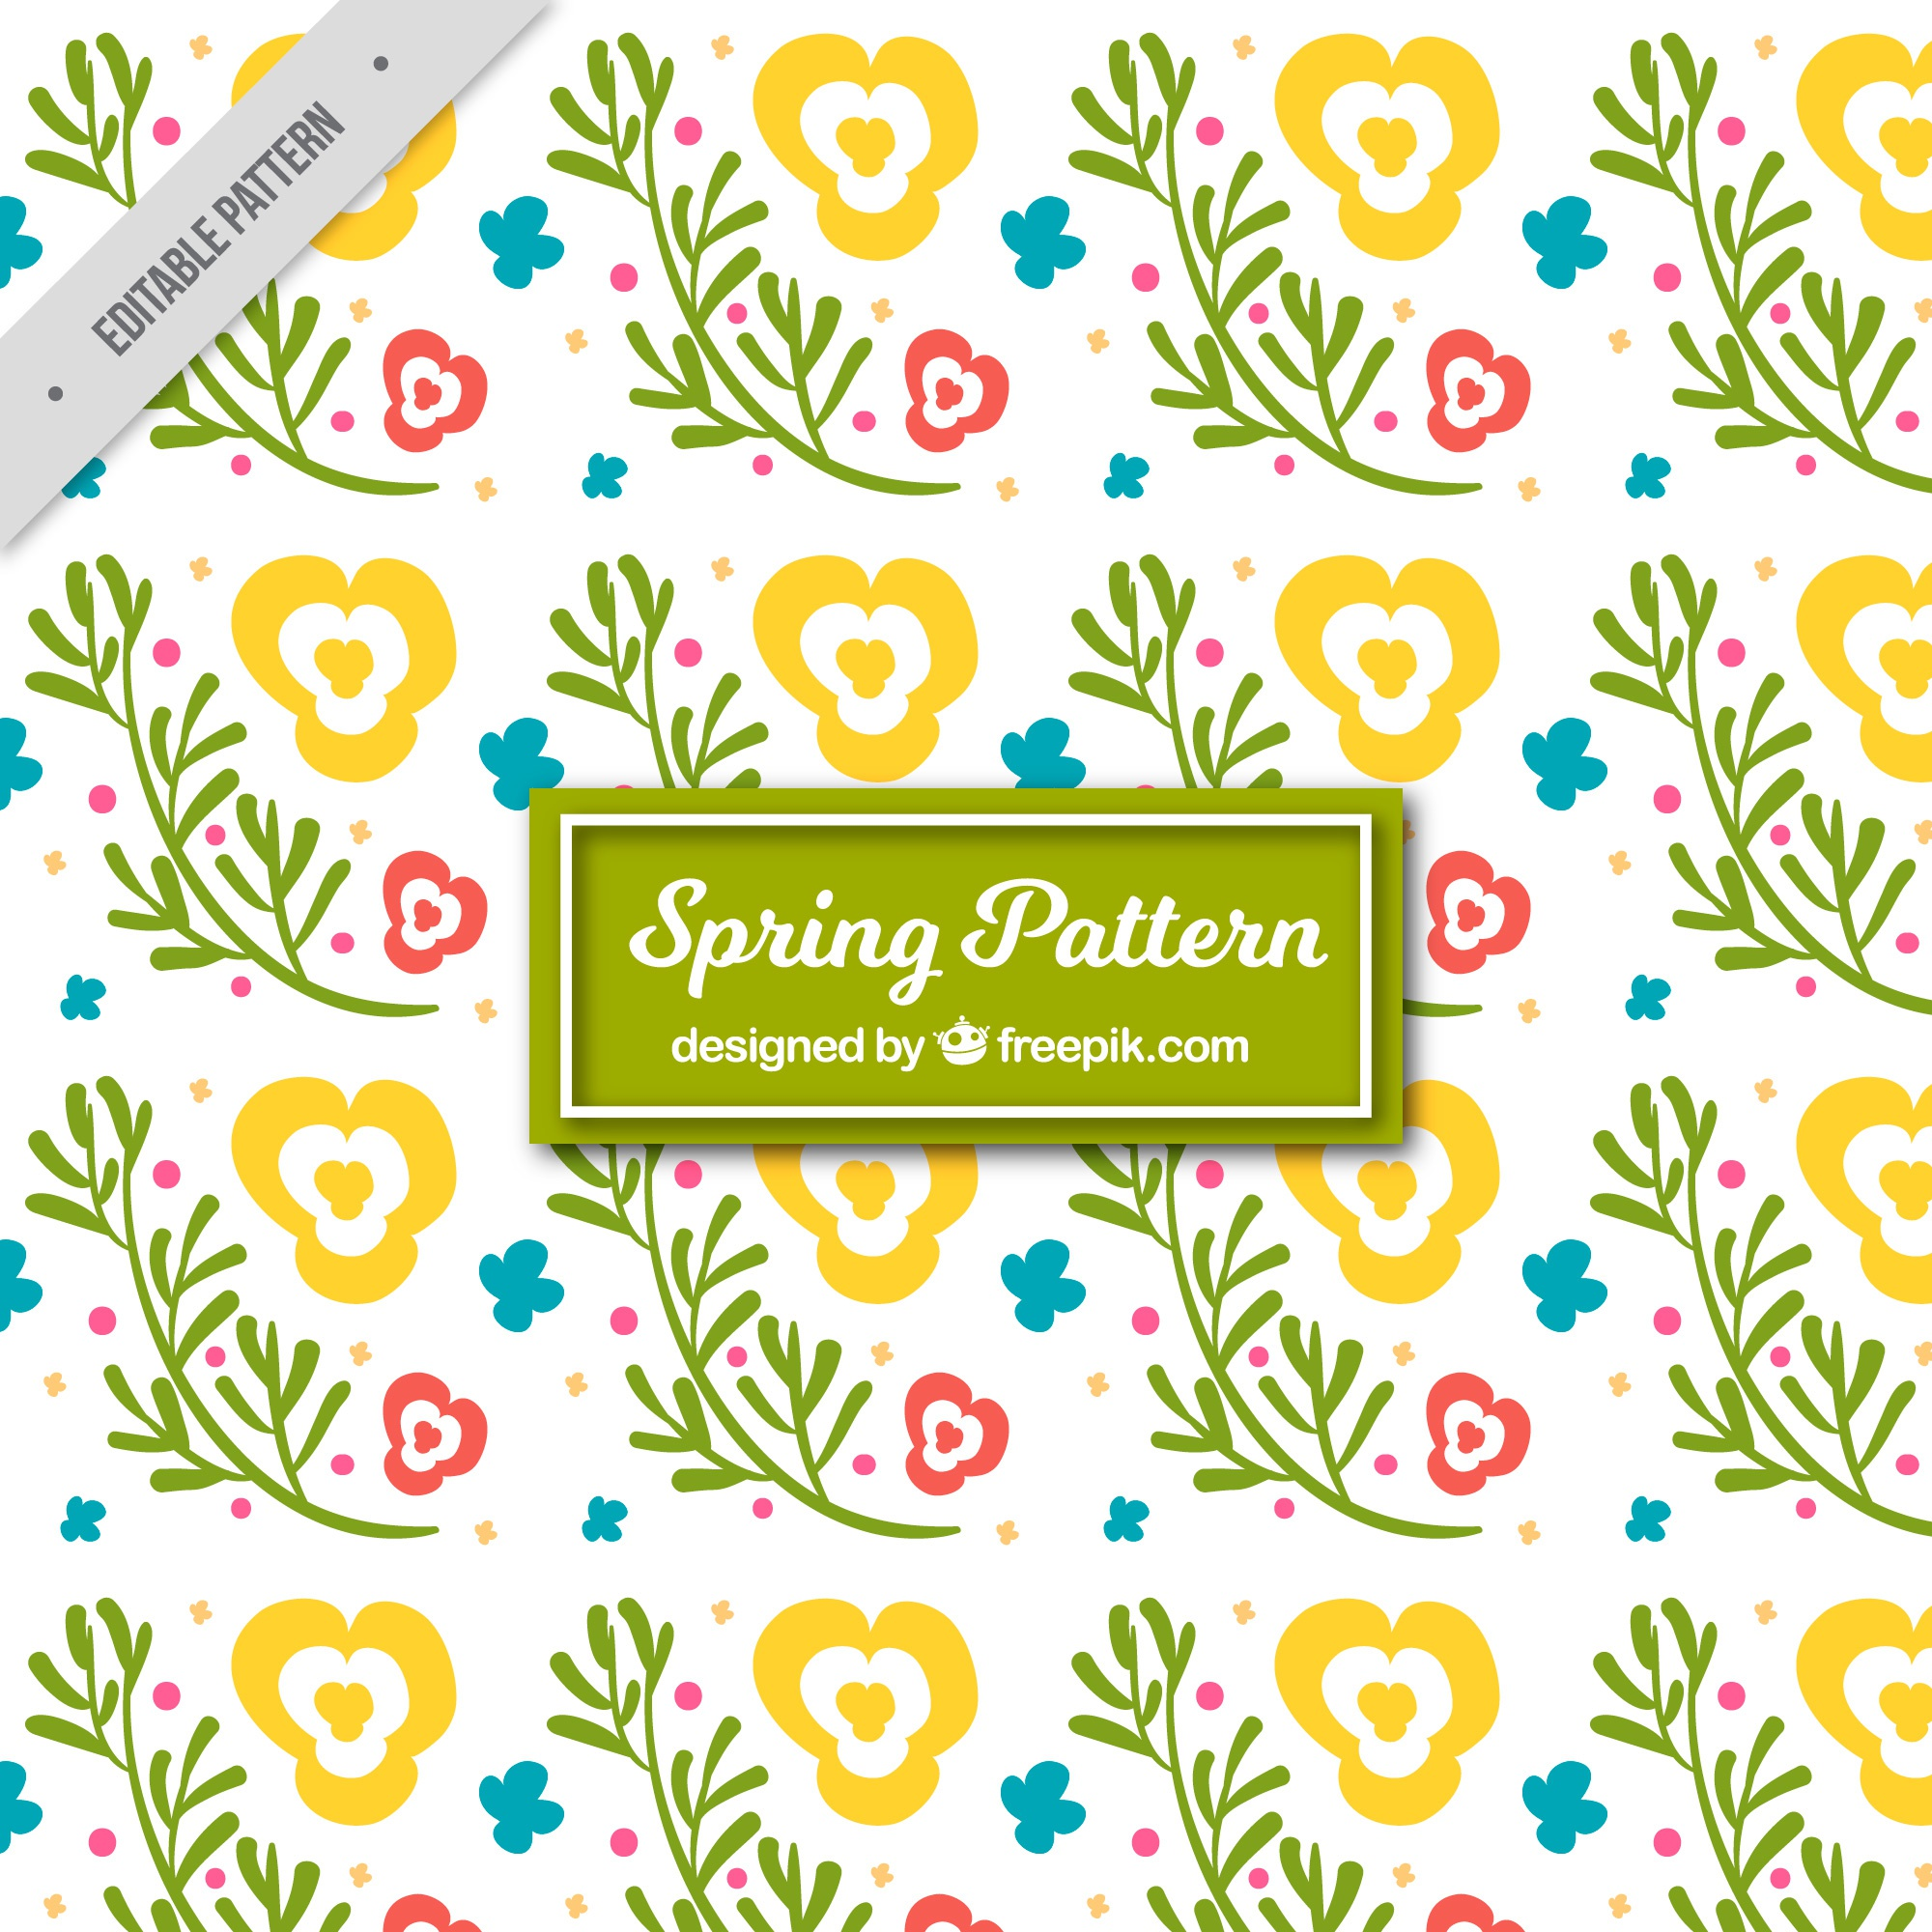 Spring pattern with abstract flowers